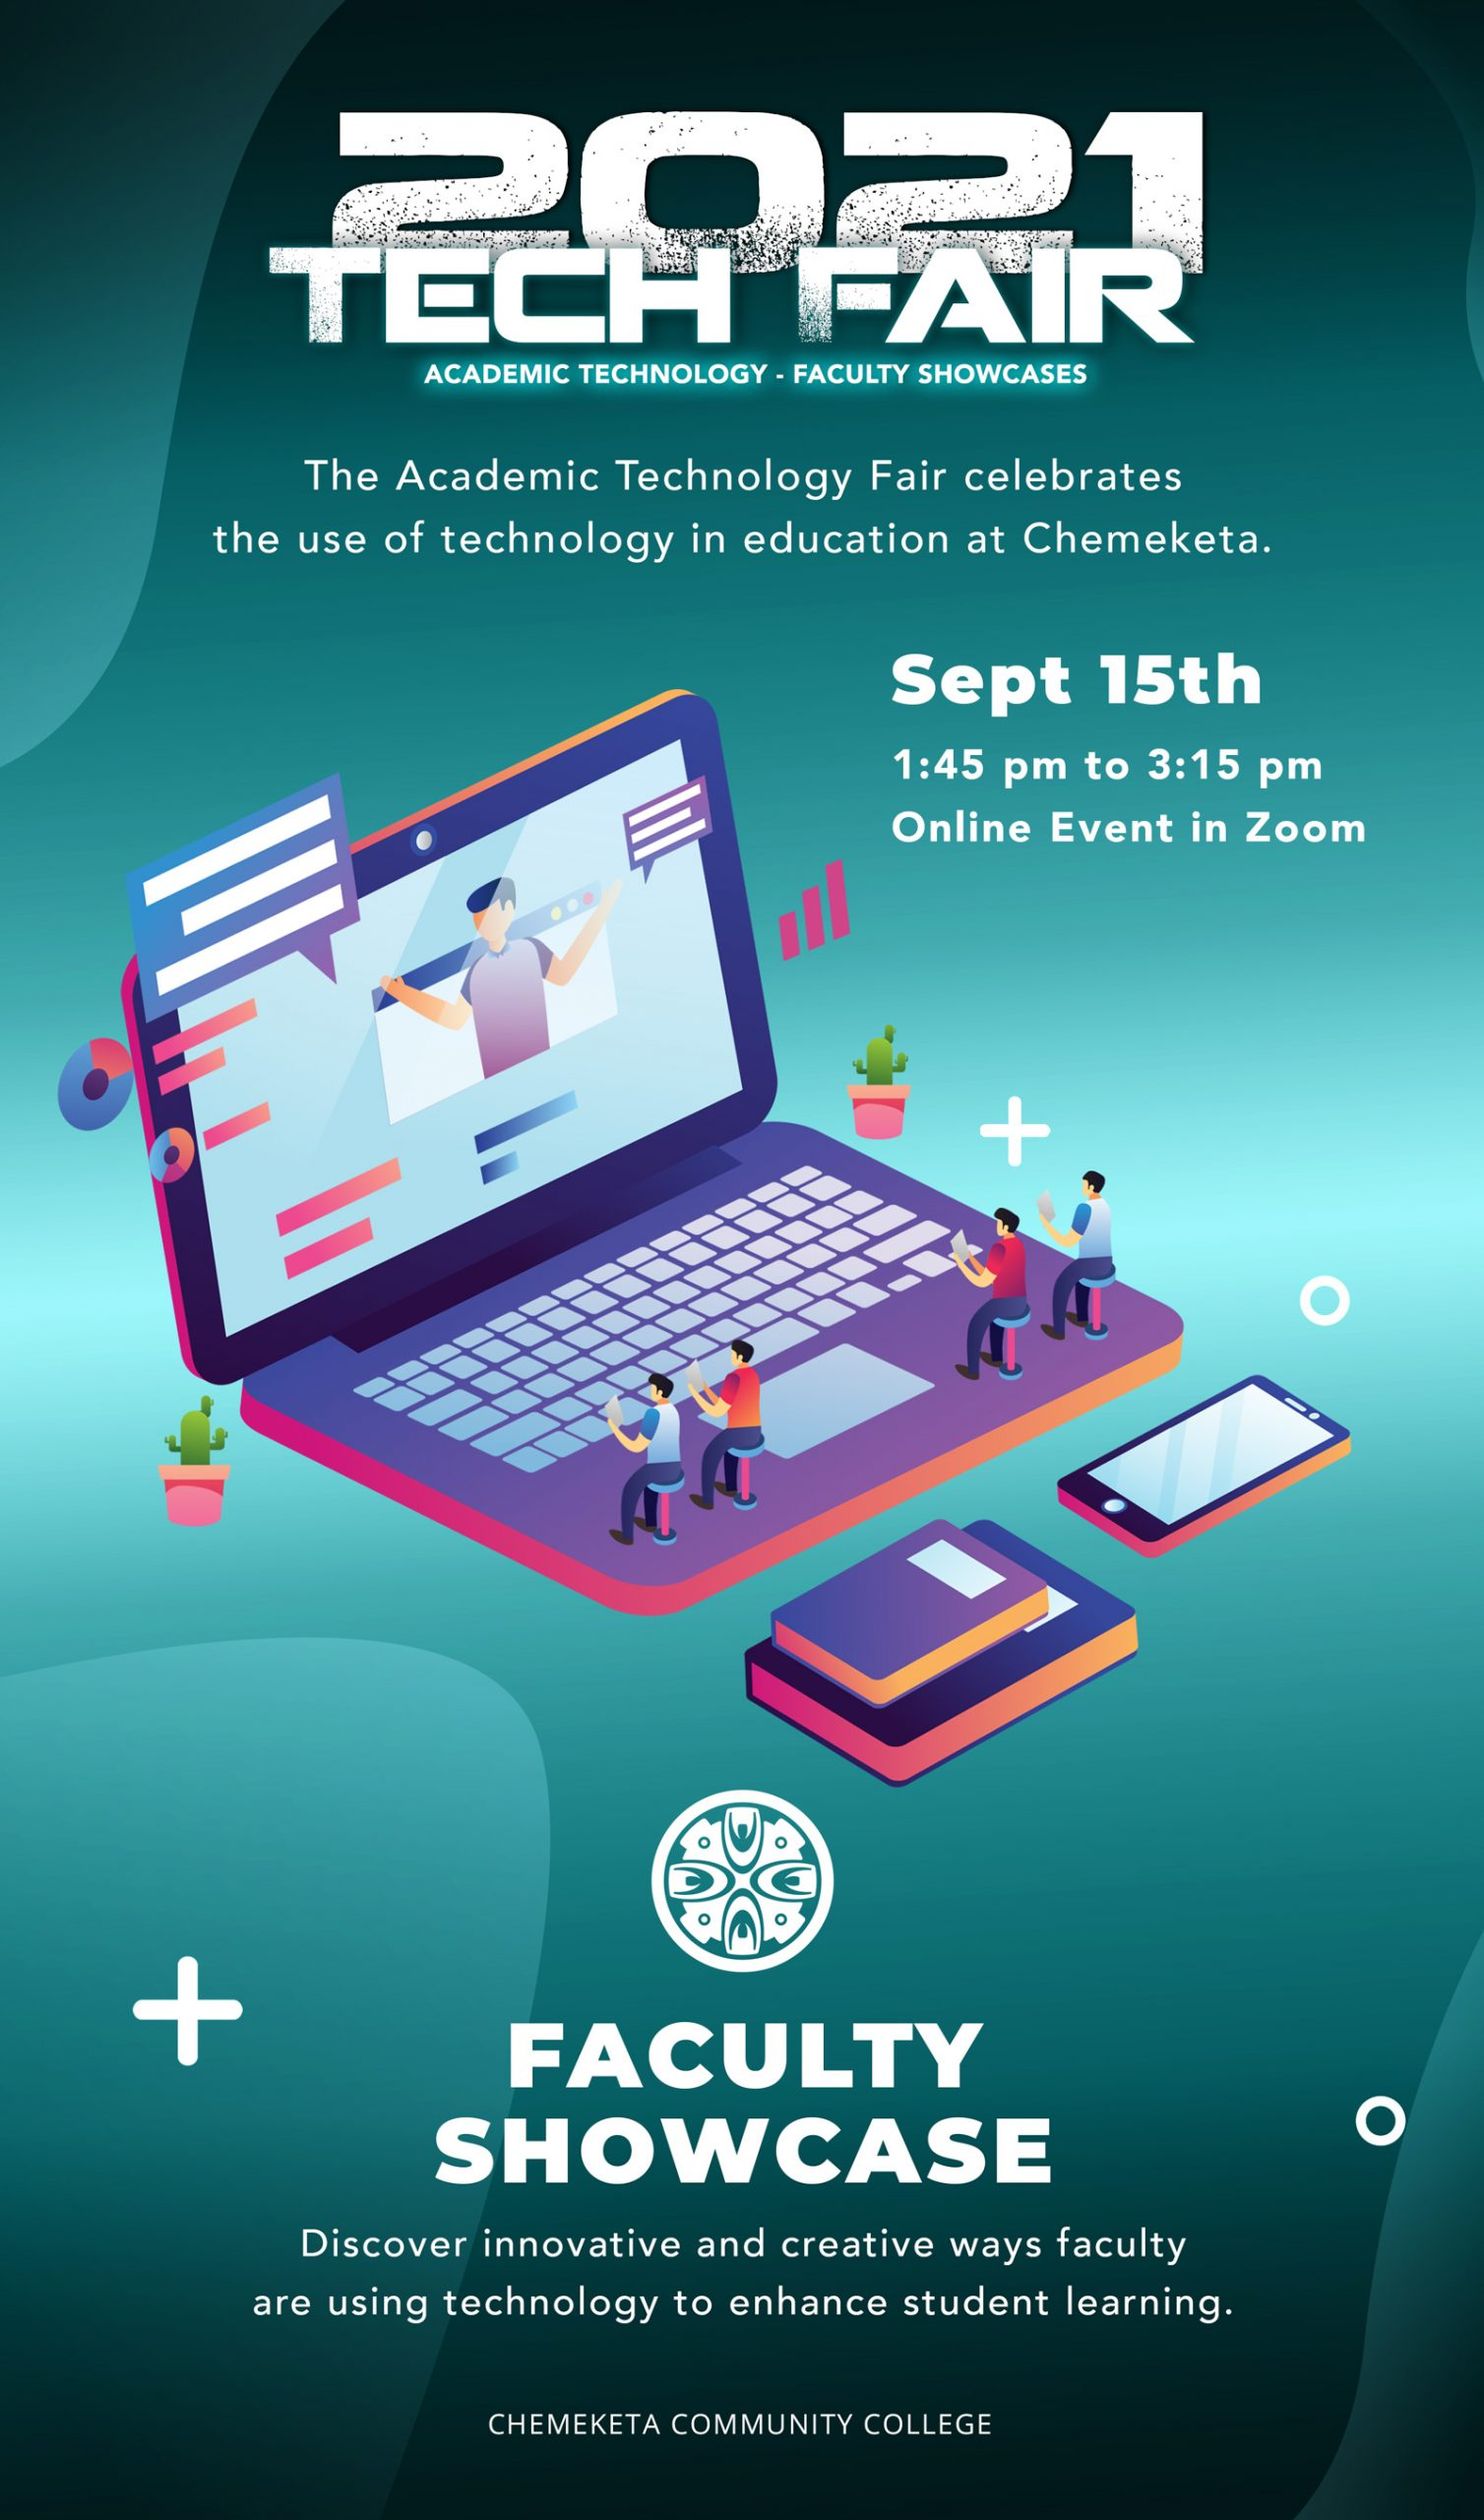 2021 Tech Fair Poster with event information about the faculty showcase